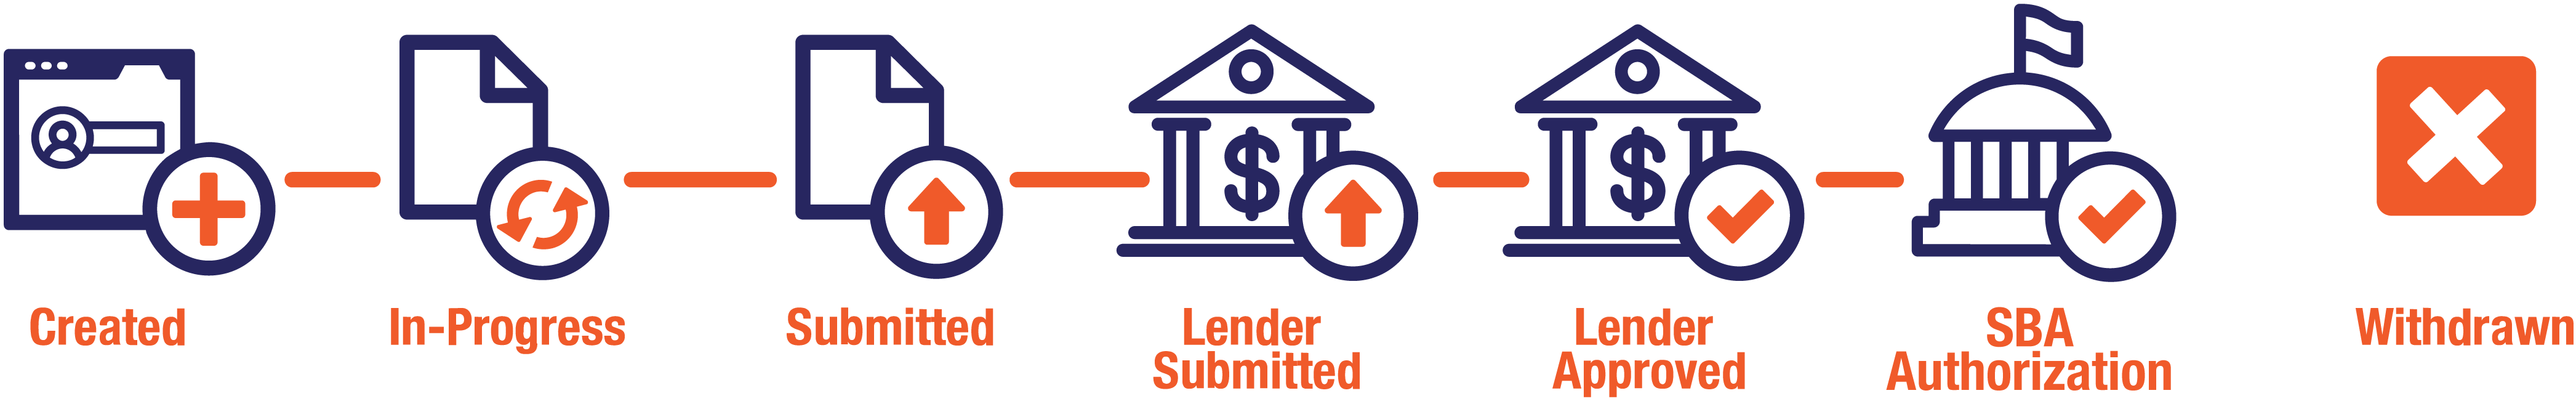 Created -> In-Progress -> Submitted -> Lender Submitted -> Lender Approved -> SBA Authorization, Withdrawn